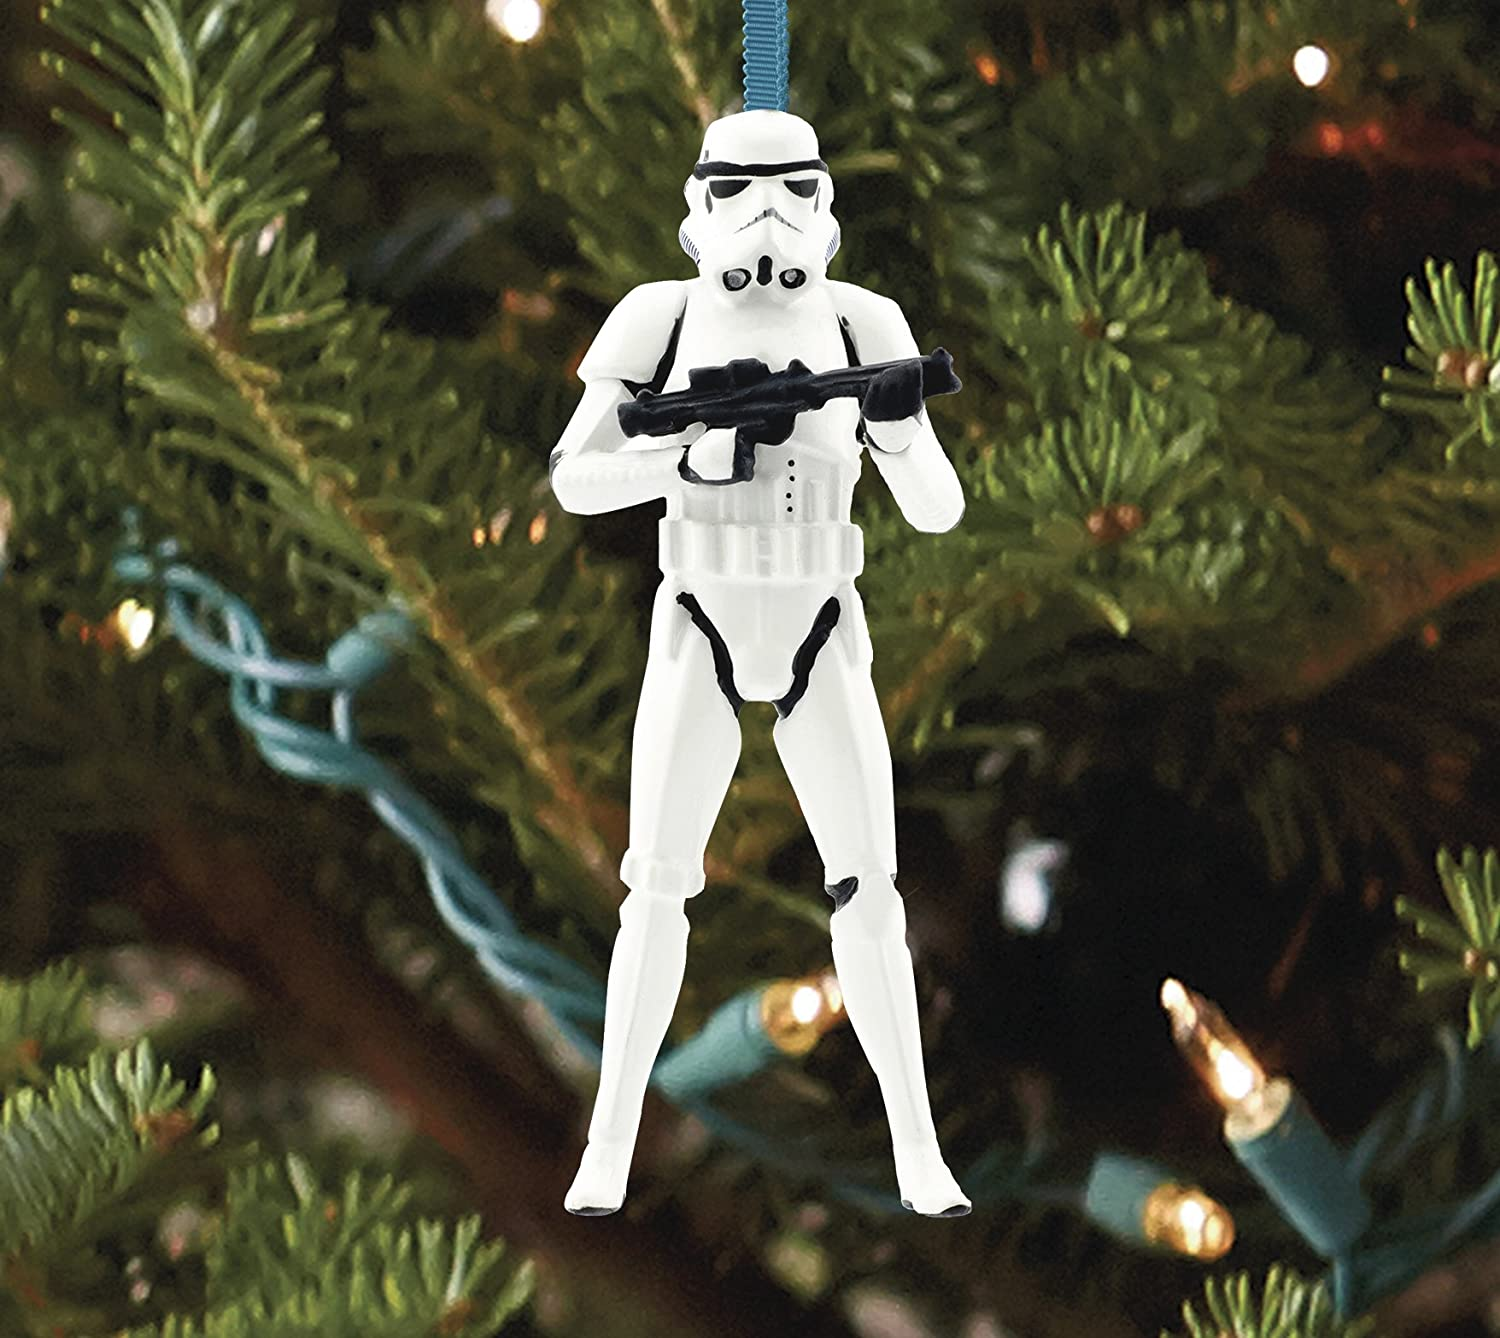 Amazon.com: Hallmark Star Wars StormTrooper Christmas Ornament ...